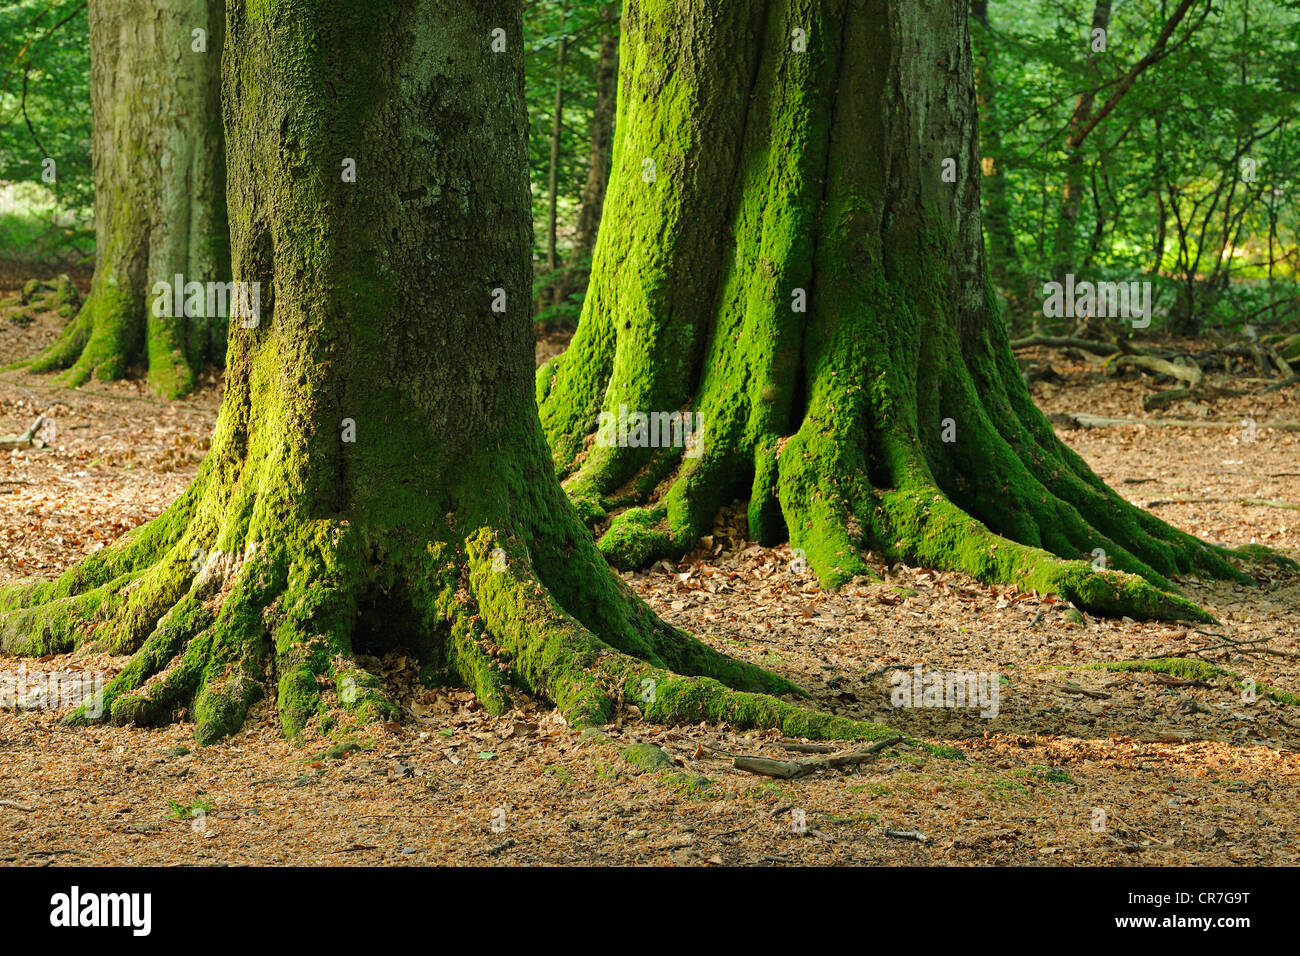 Moss-covered trunks of old beeches (Fagus), Urwald Sababurg nature reserve, Hesse, Germany, Europe - Stock Image